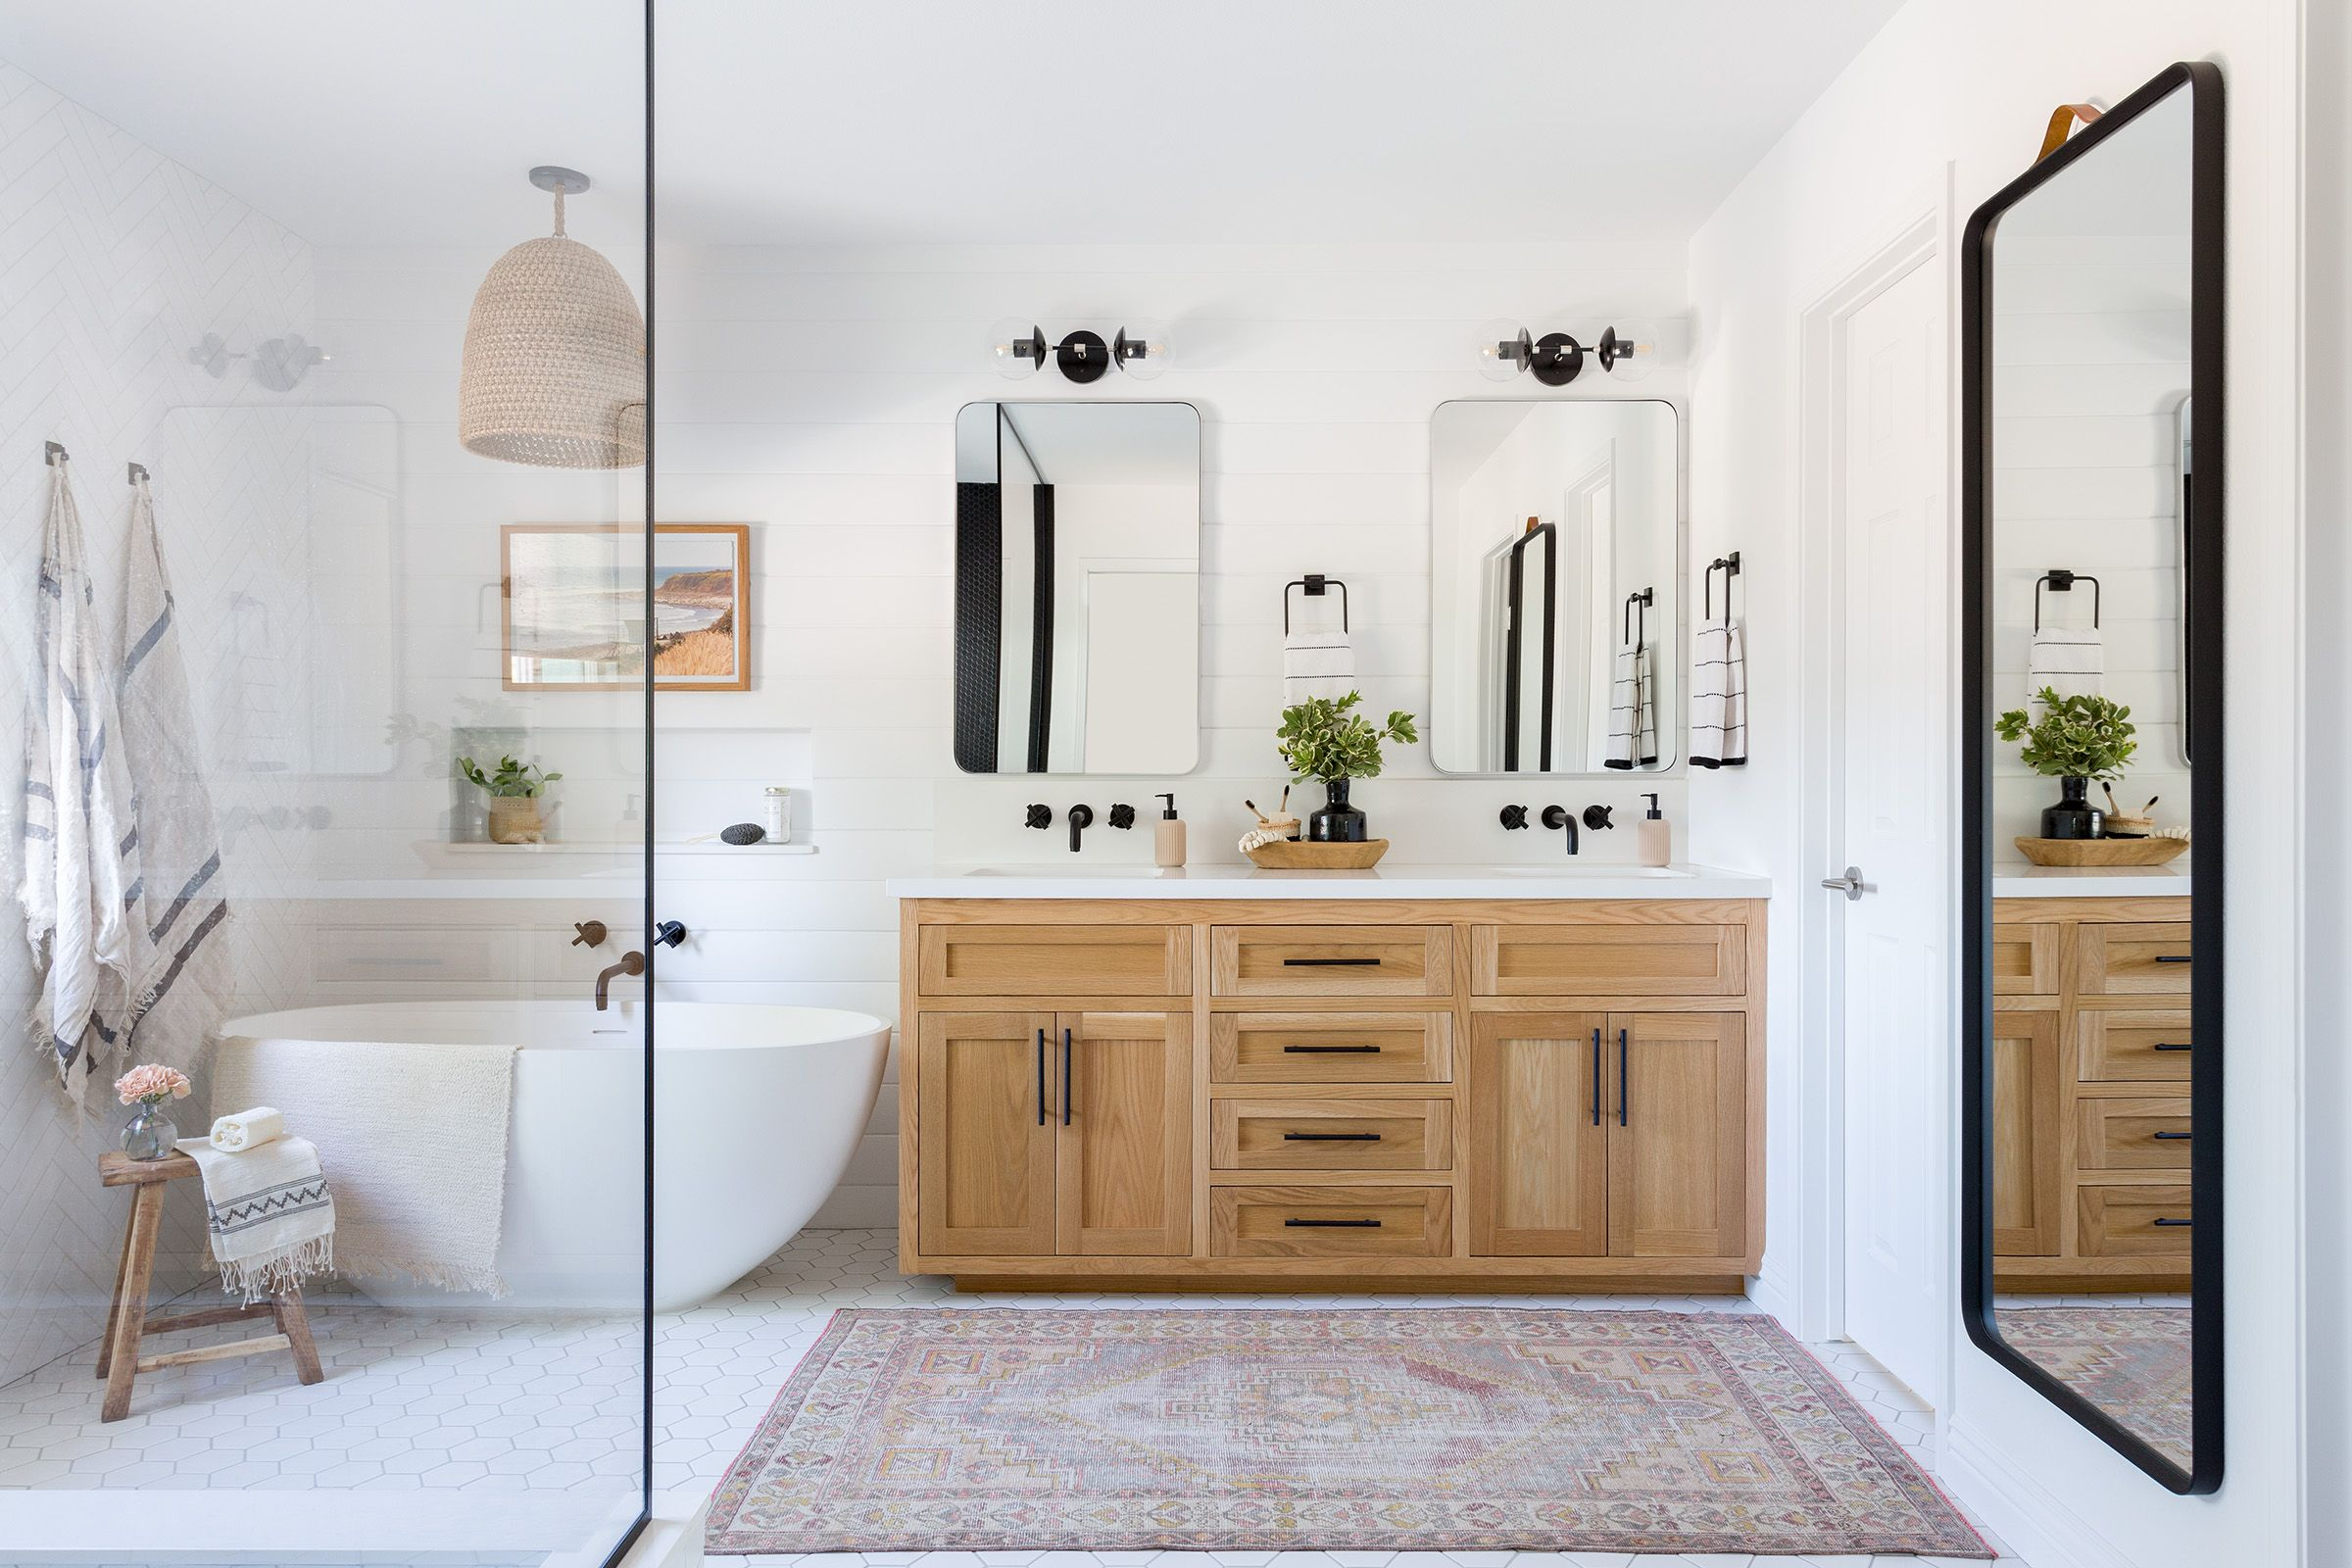 A Large Master Bathroom Designed With Personality Rue Master Bathroom Design Bathroom Interior Design Home